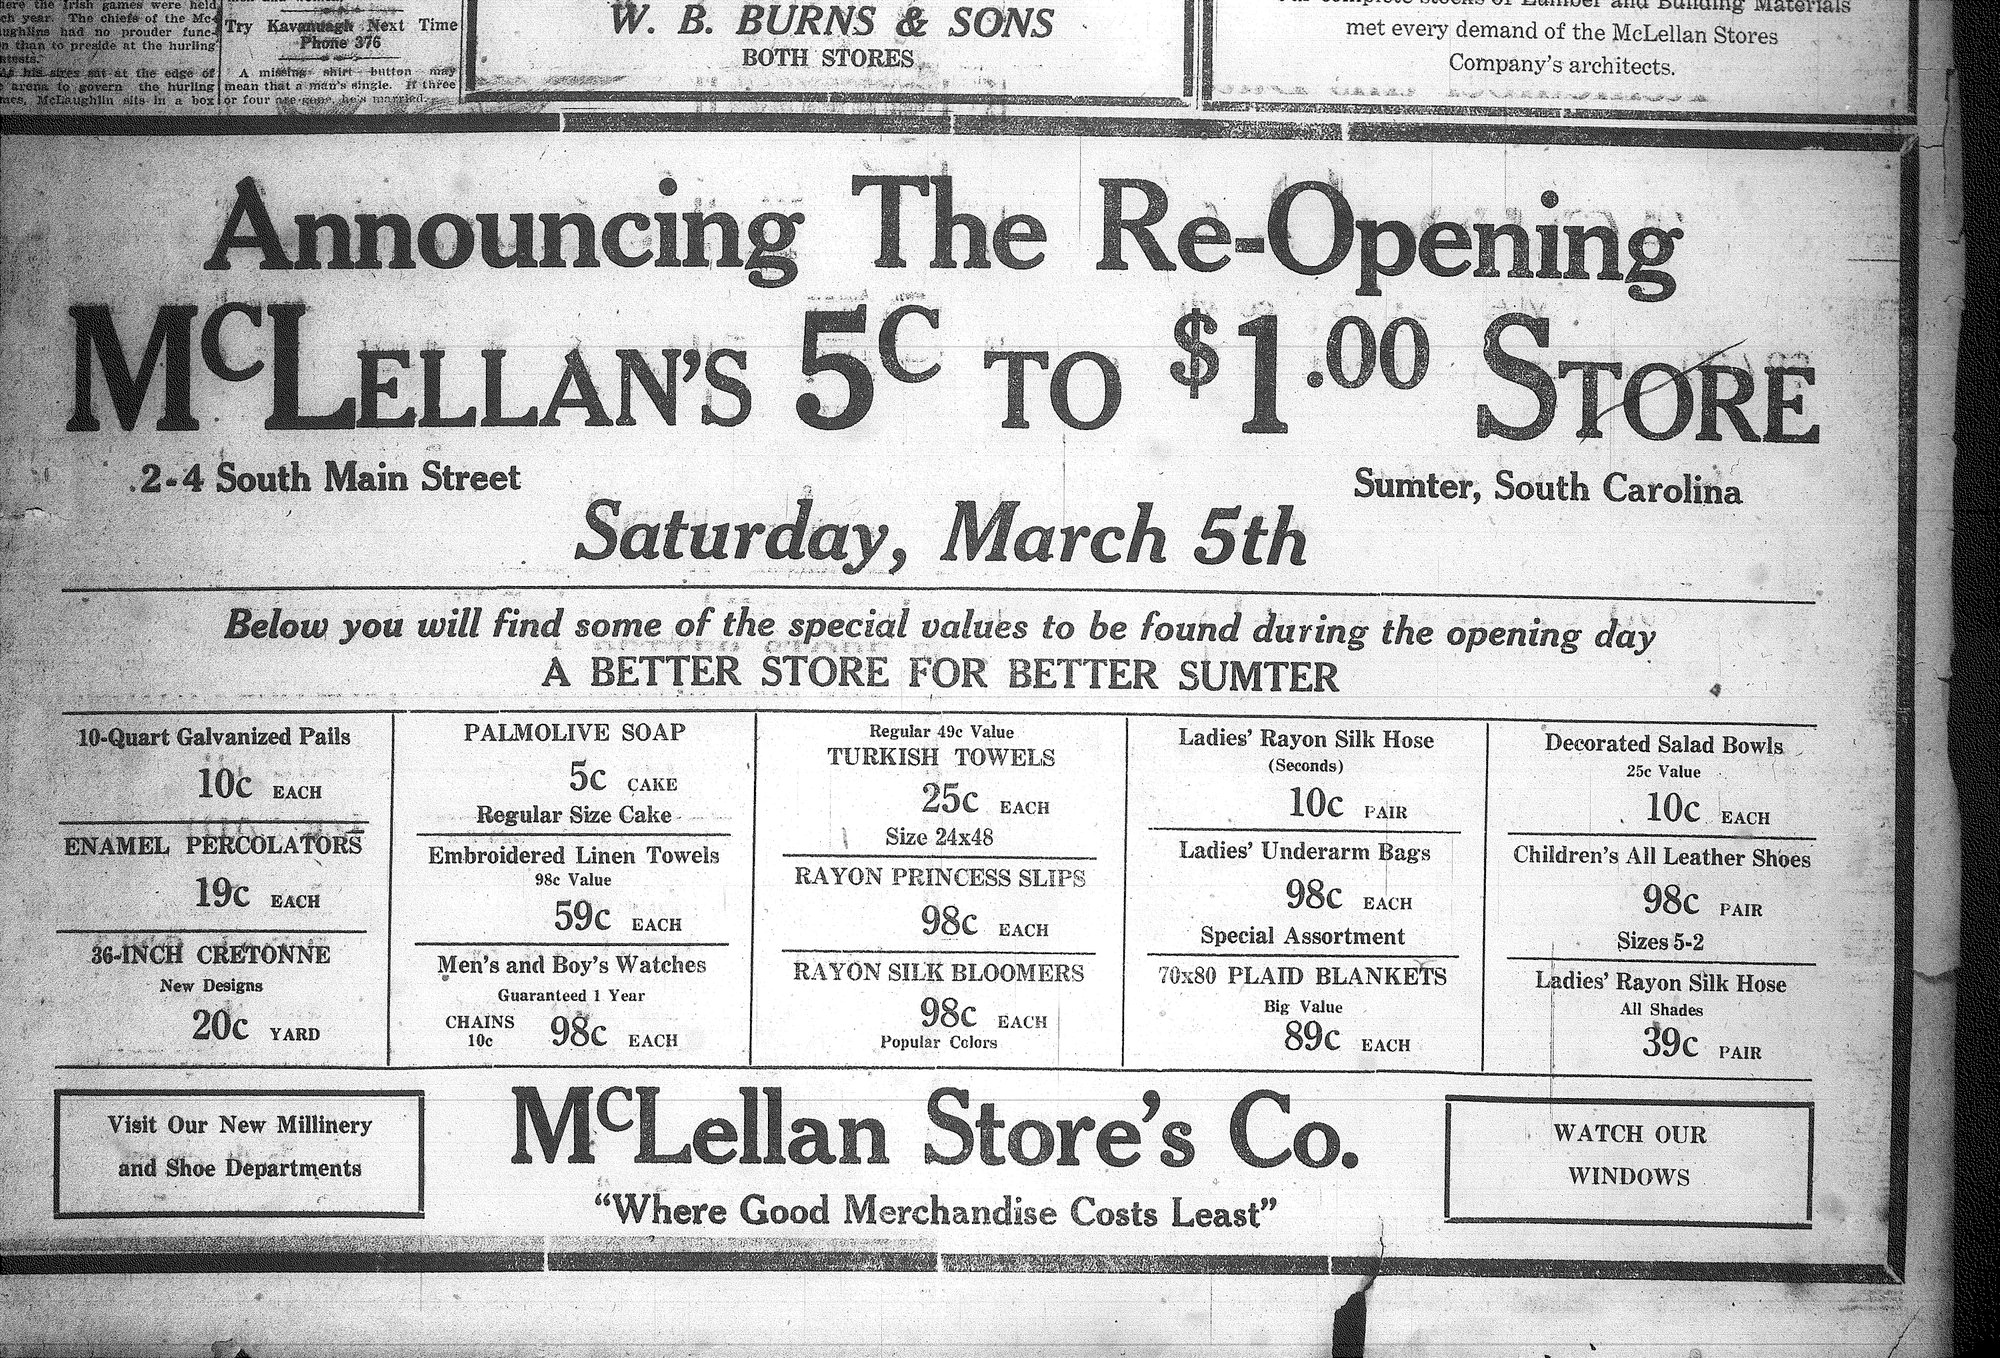 An ad for McLellan's reopening is seen in a newspaper in 1927.